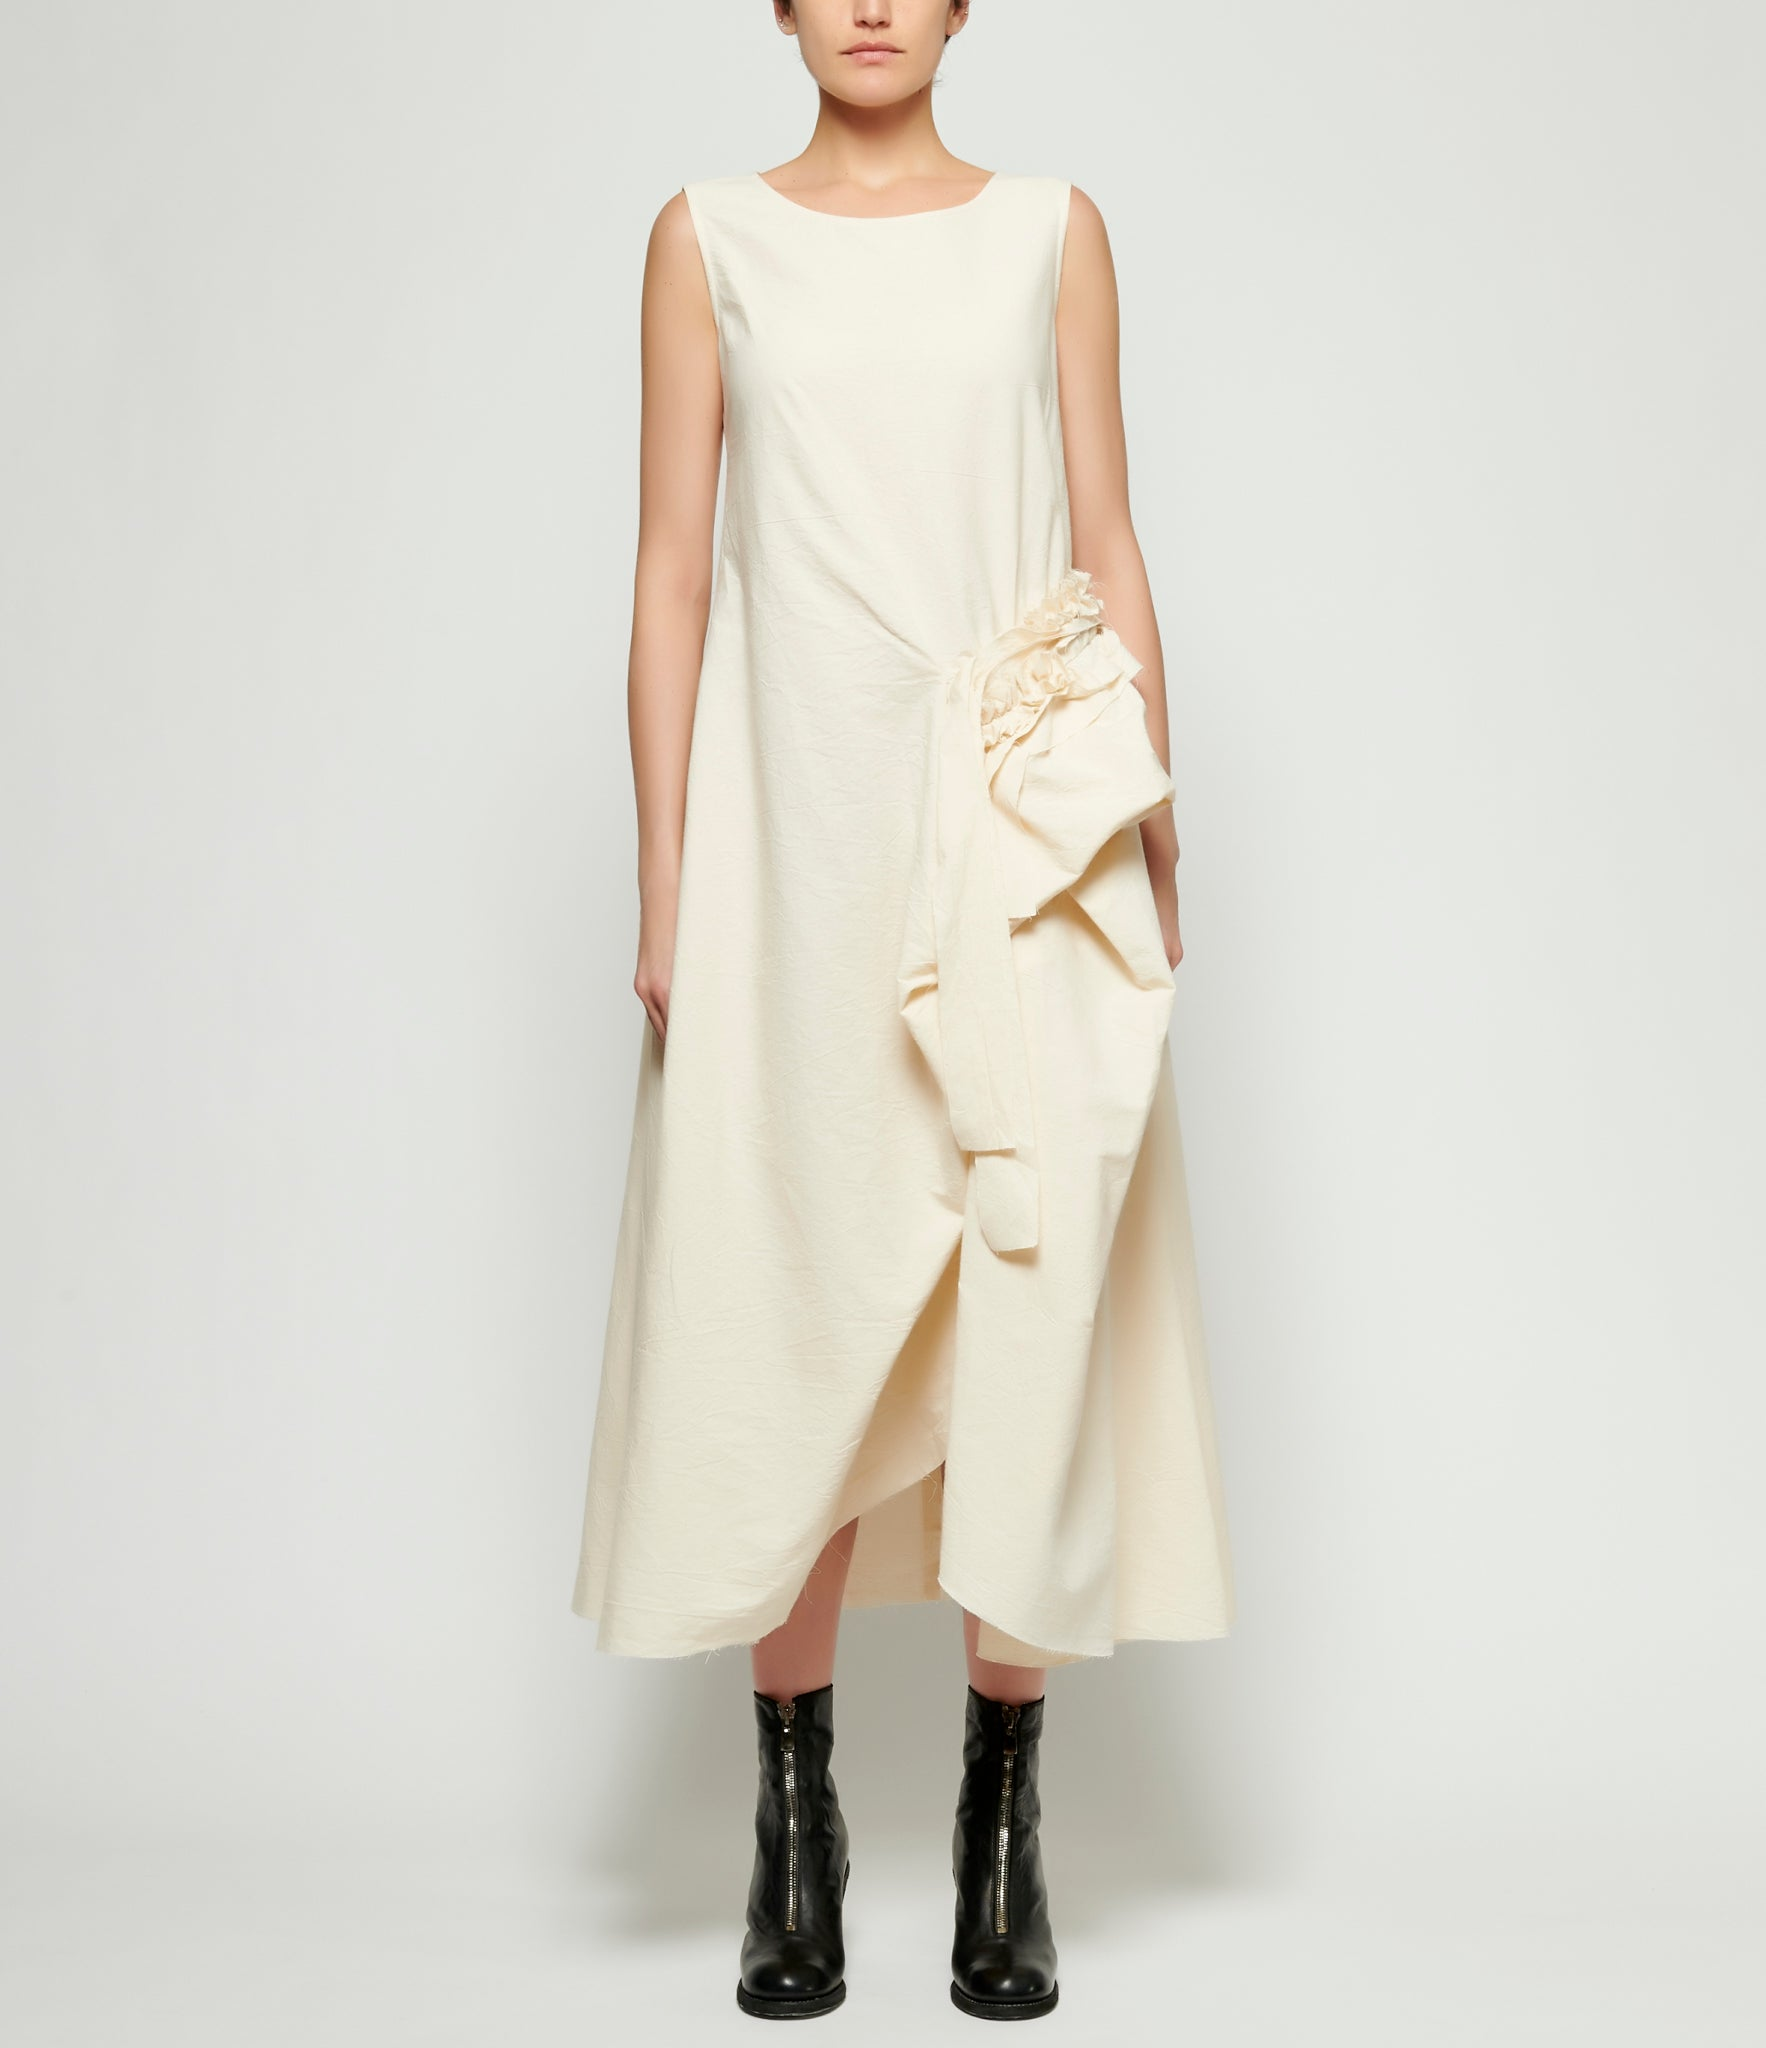 Replika Off White Side Tie Dress